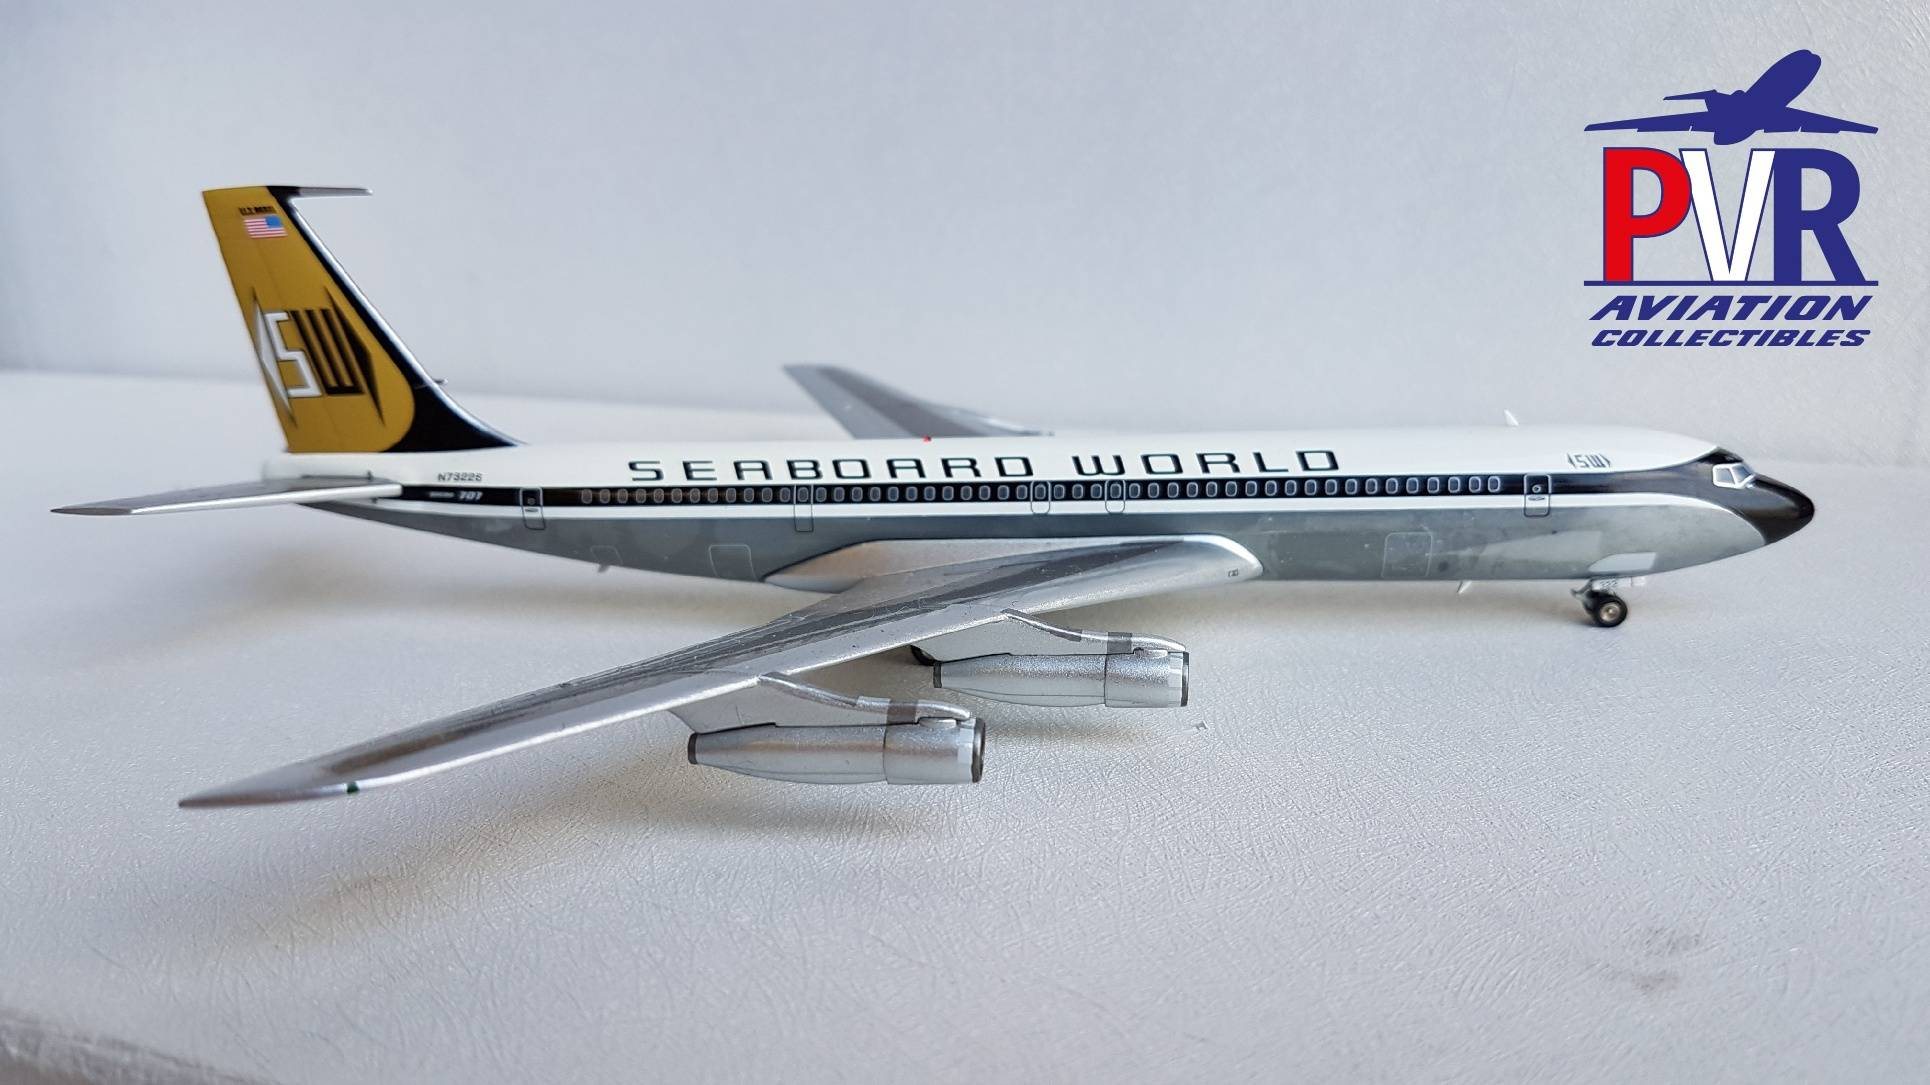 BBOX200 Boeing 707-345C Seaboard World (Polished) €70